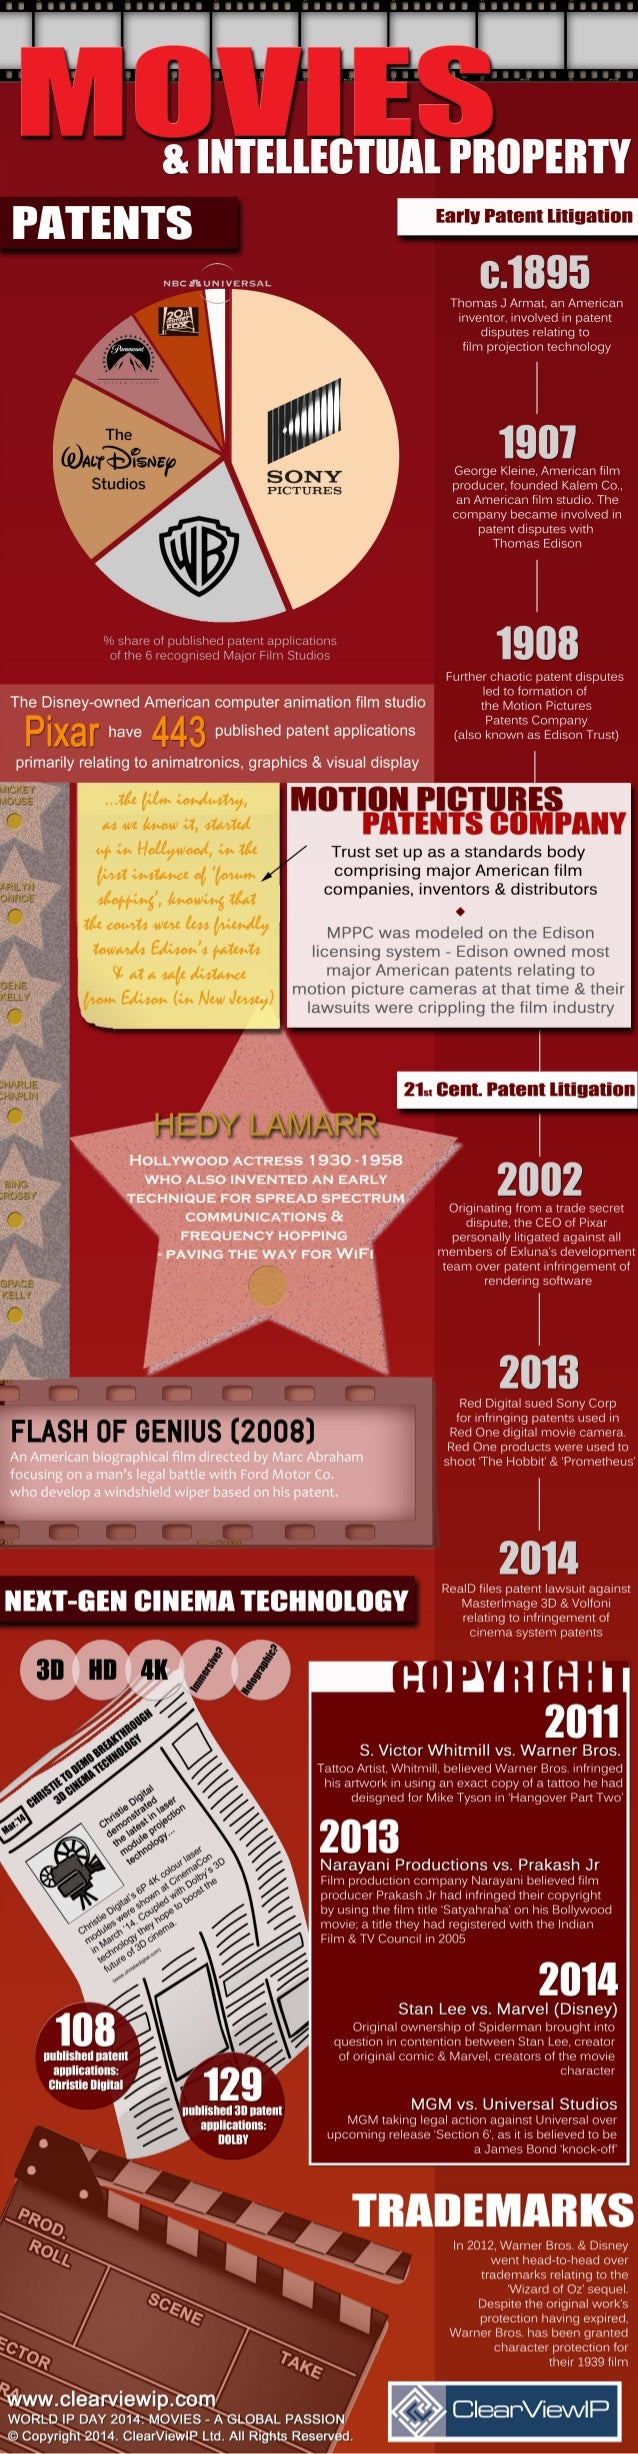 World IP Day 2014, Movies & Intellectual Property Infographic